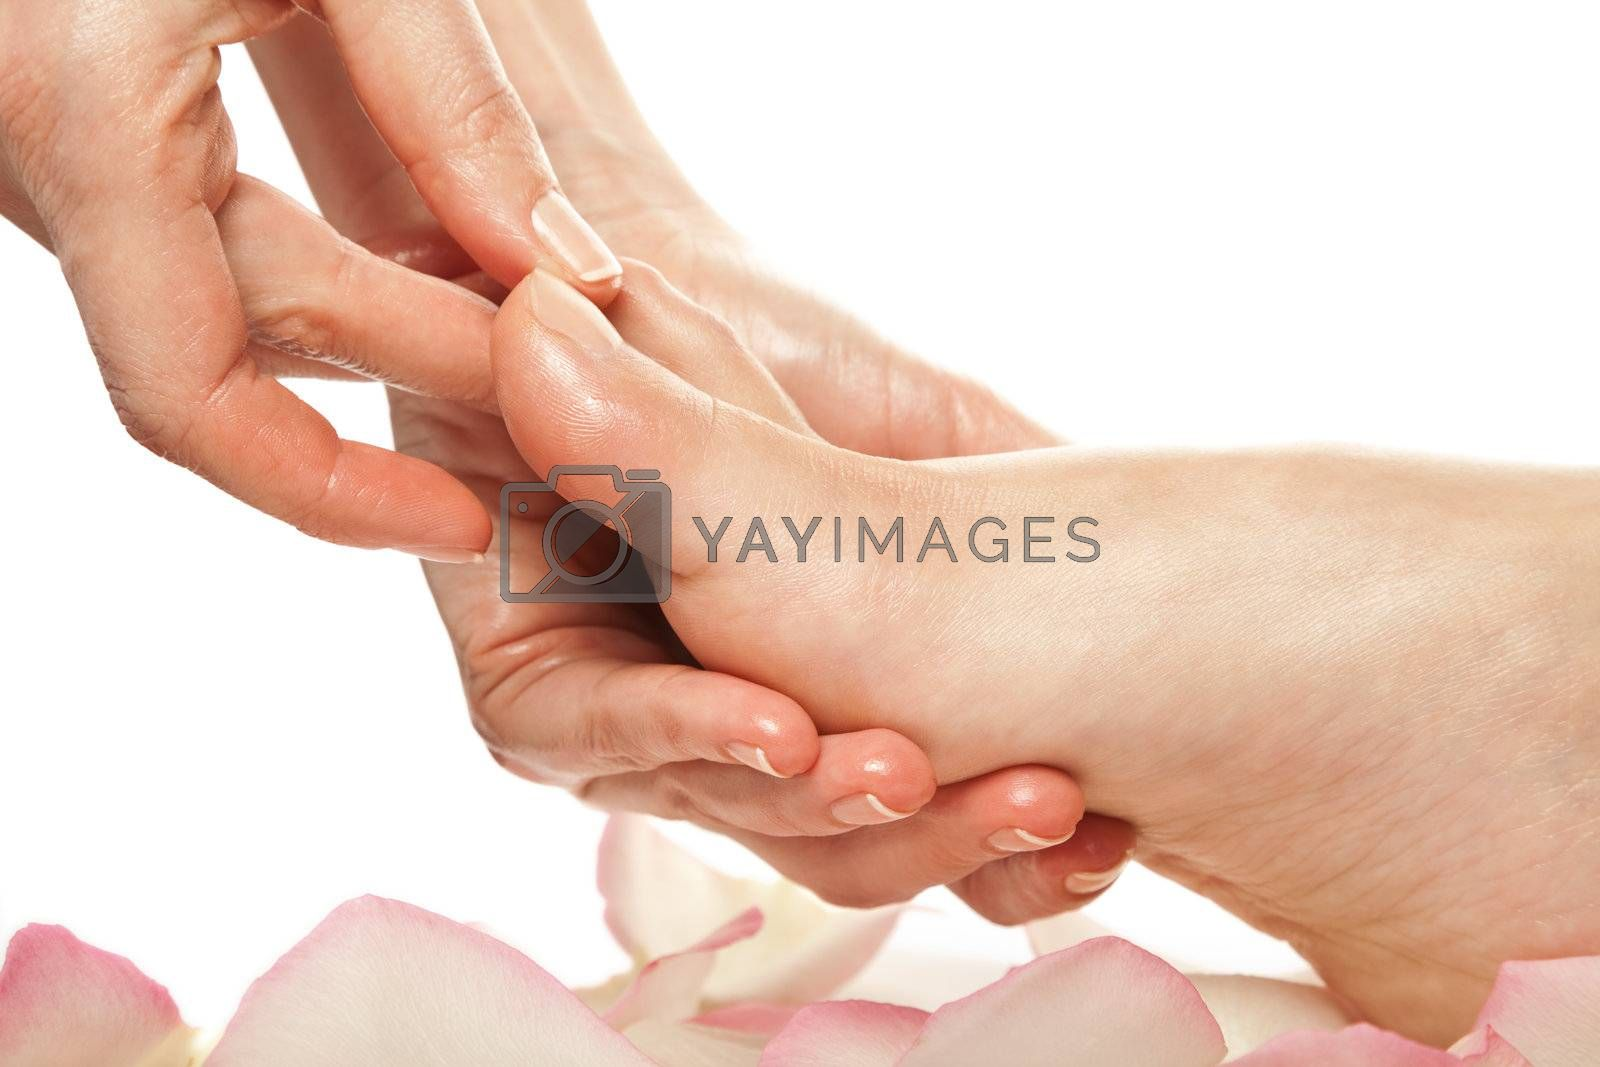 woman foot receiving gentle massage in a spa setting isolated